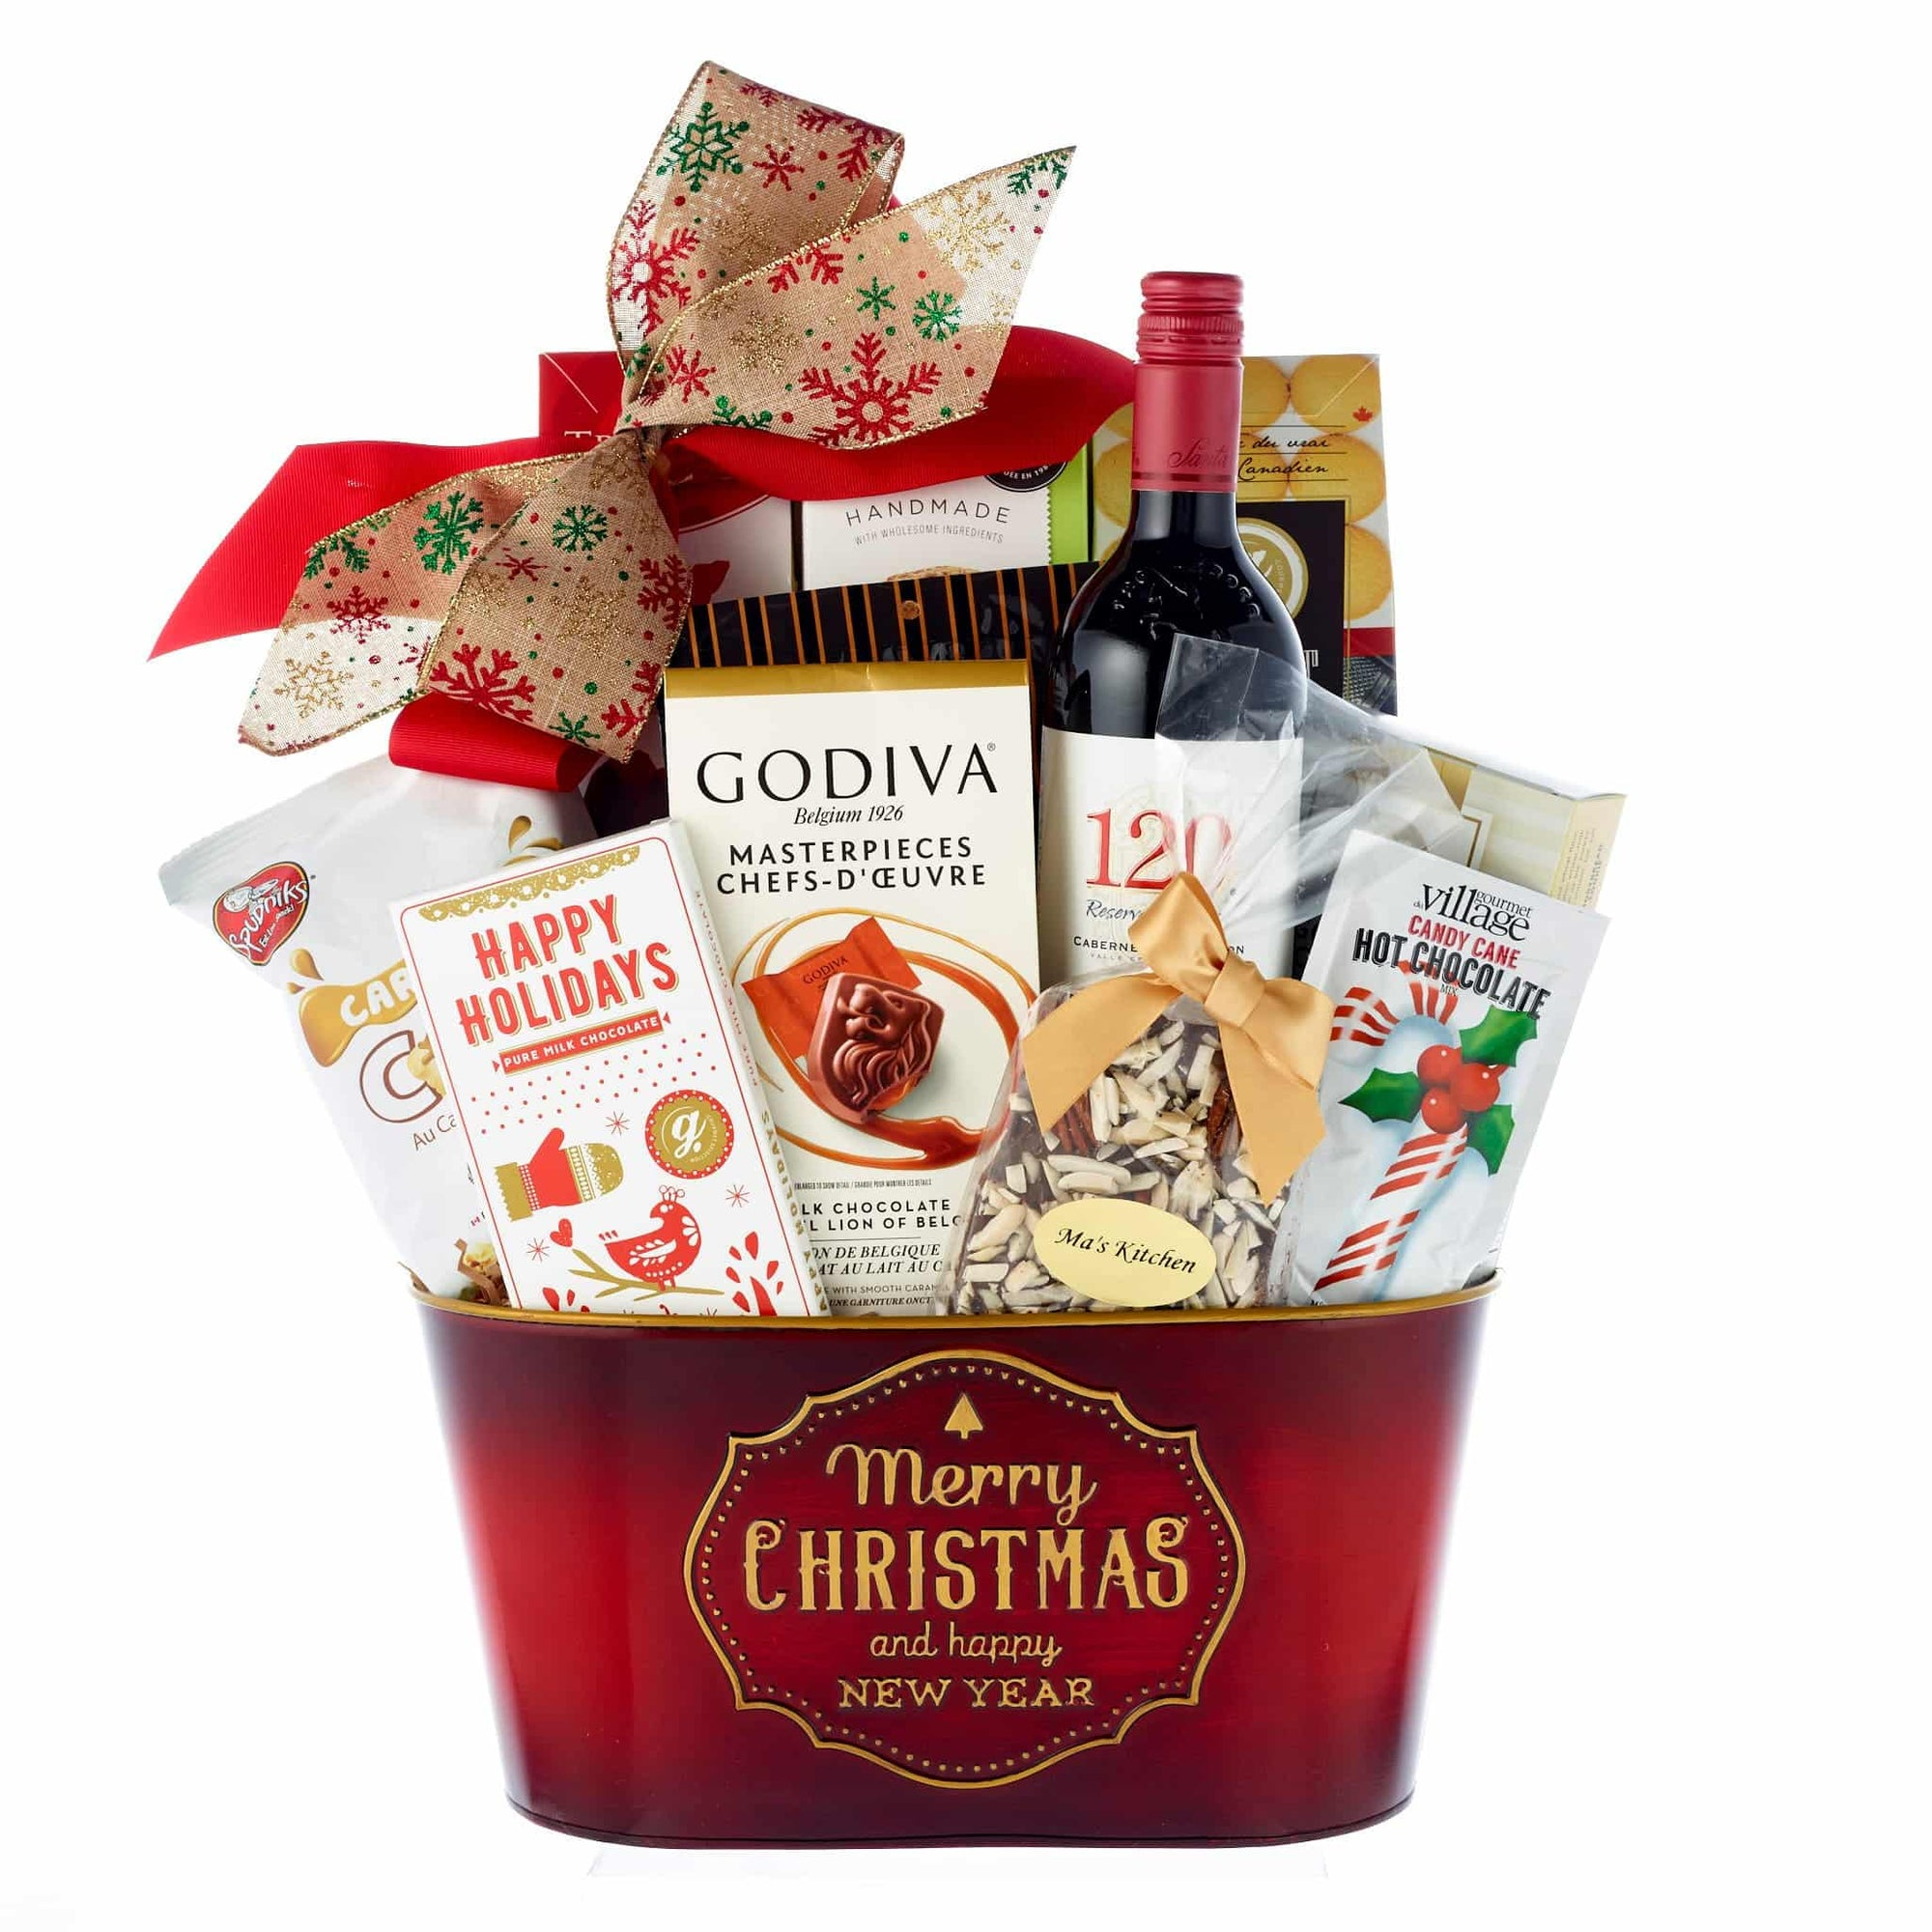 Merry Xmas gift with cabernet red wine